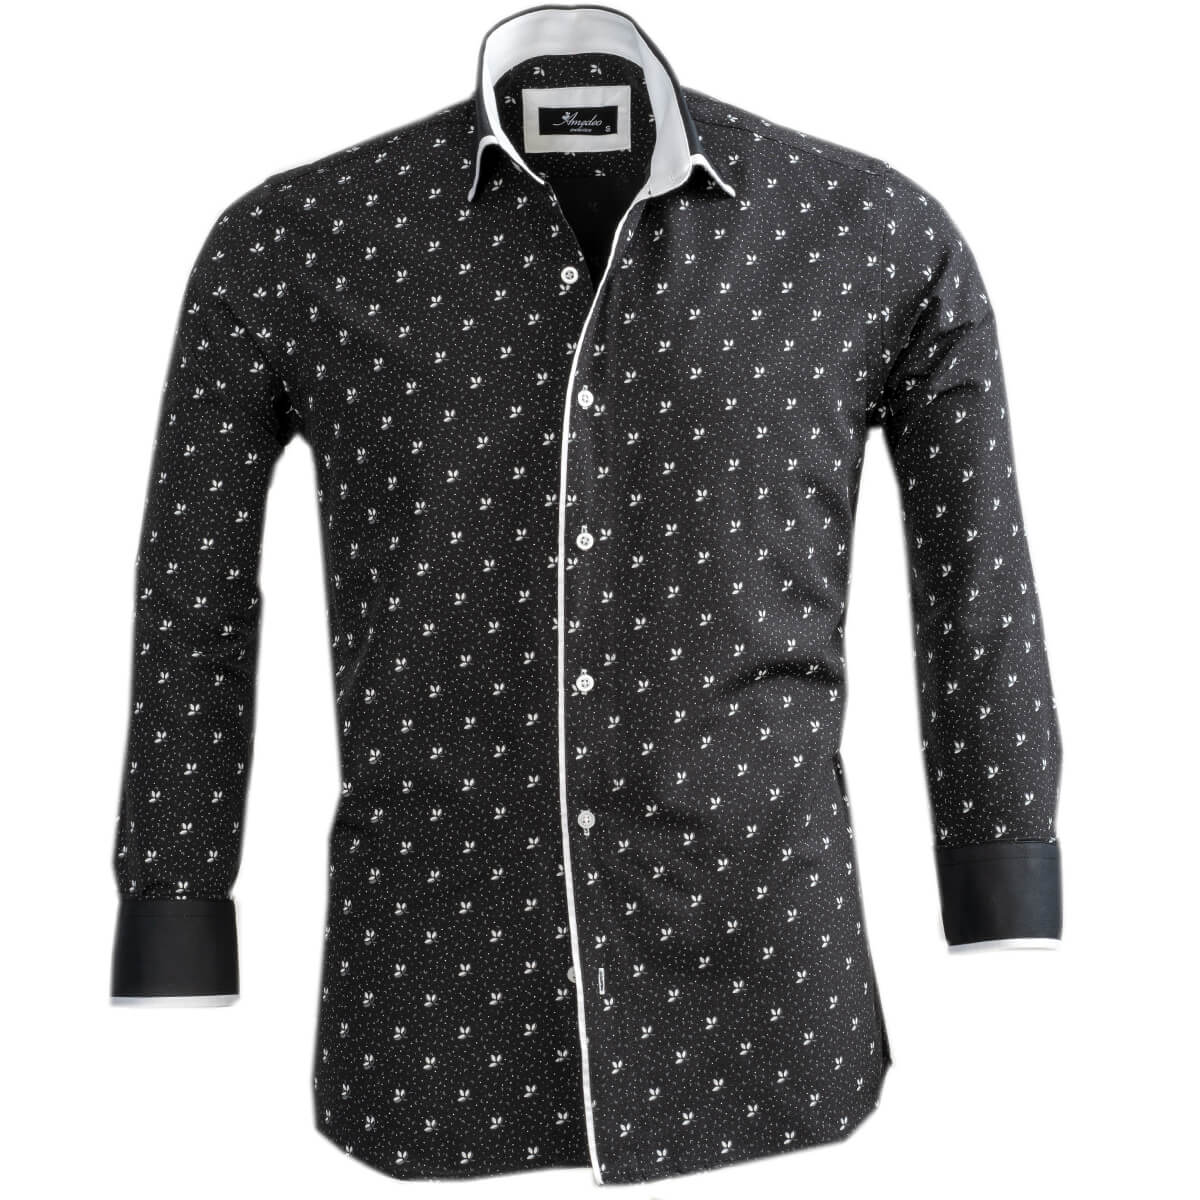 Black White Floral Mens Slim Fit Designer Dress Shirt - tailored Cotton Shirts for Work and Casual Wear - Amedeo Exclusive